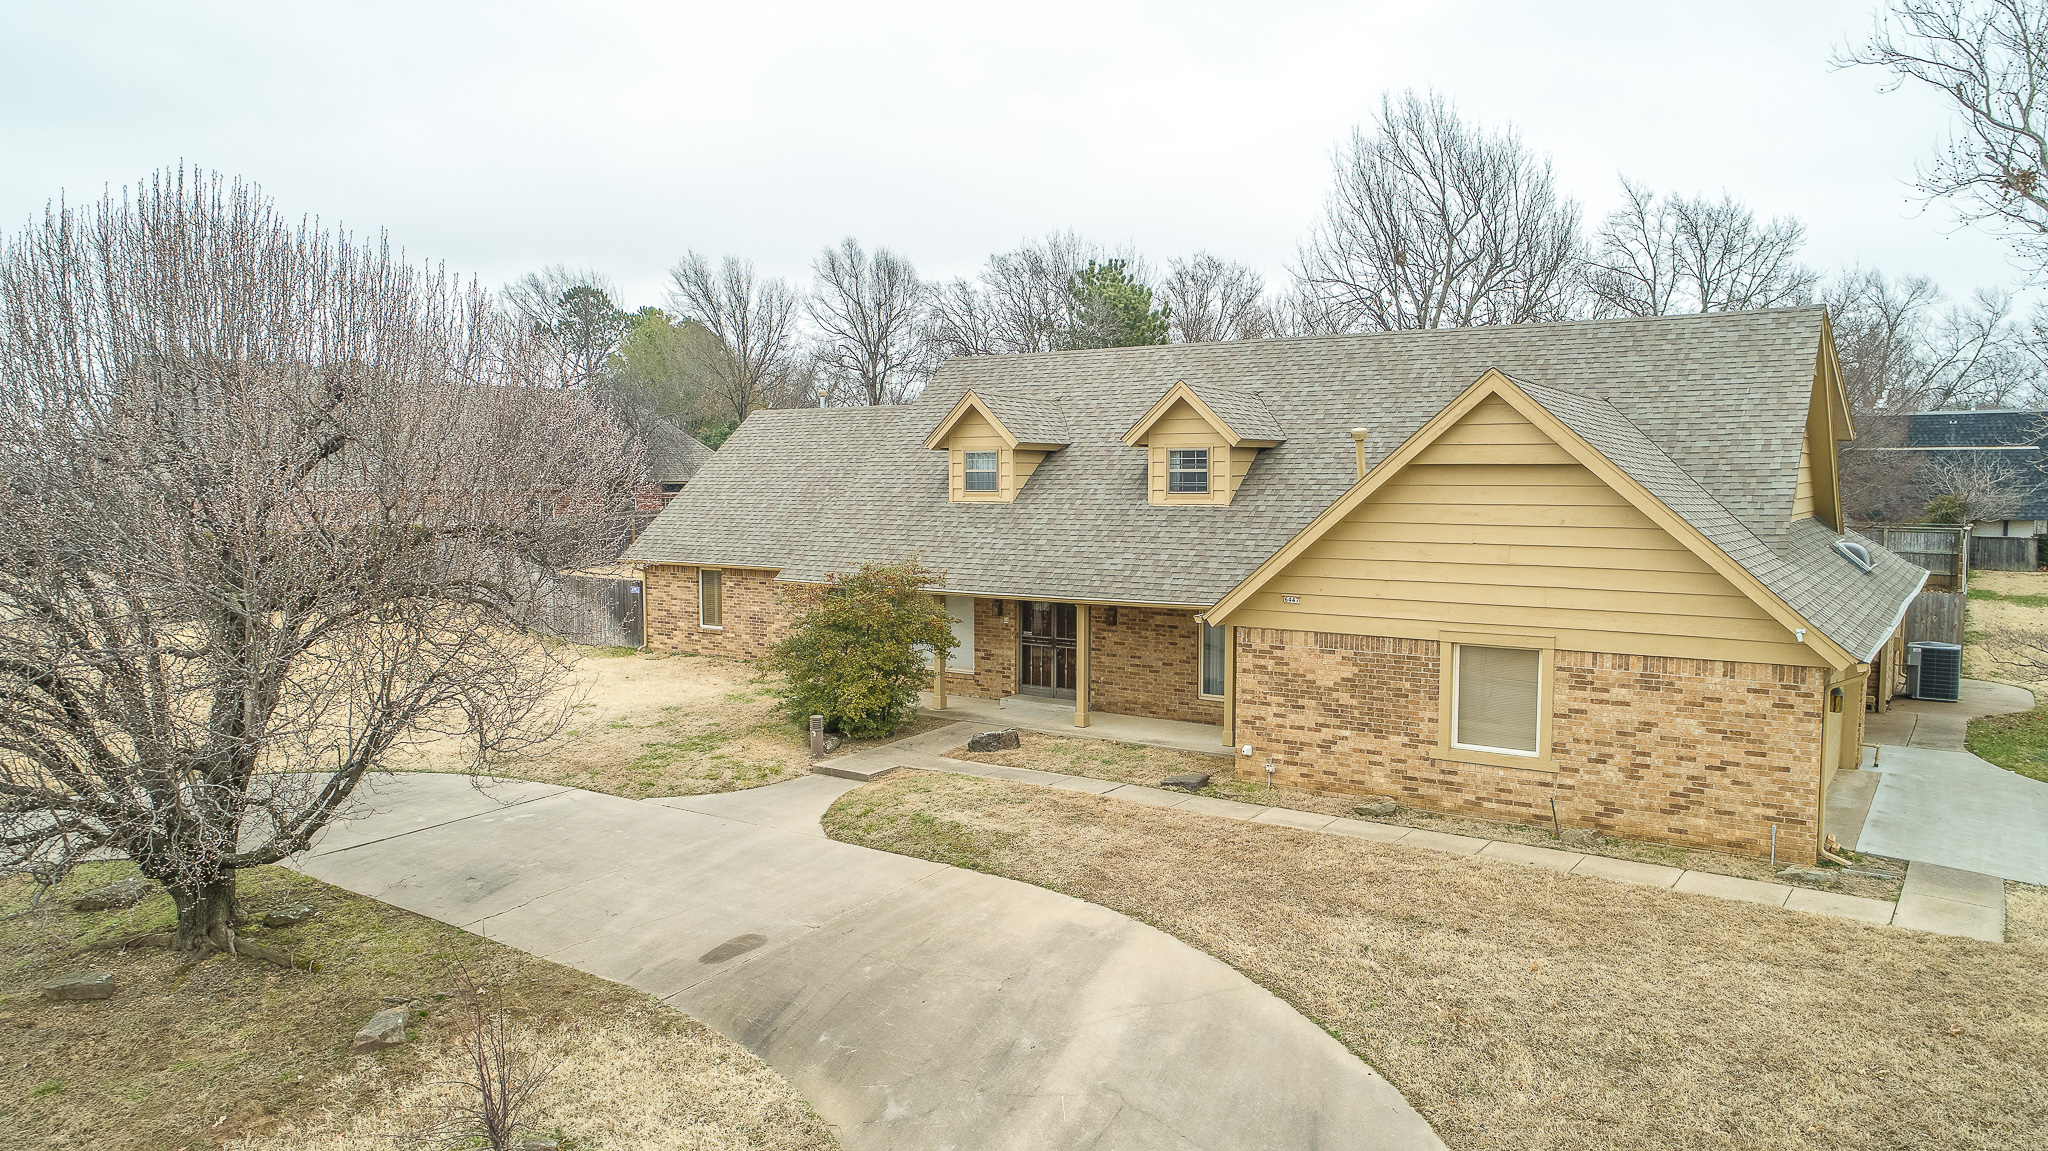 6447 S Indianapolis Ave - $299,500 - SOLD